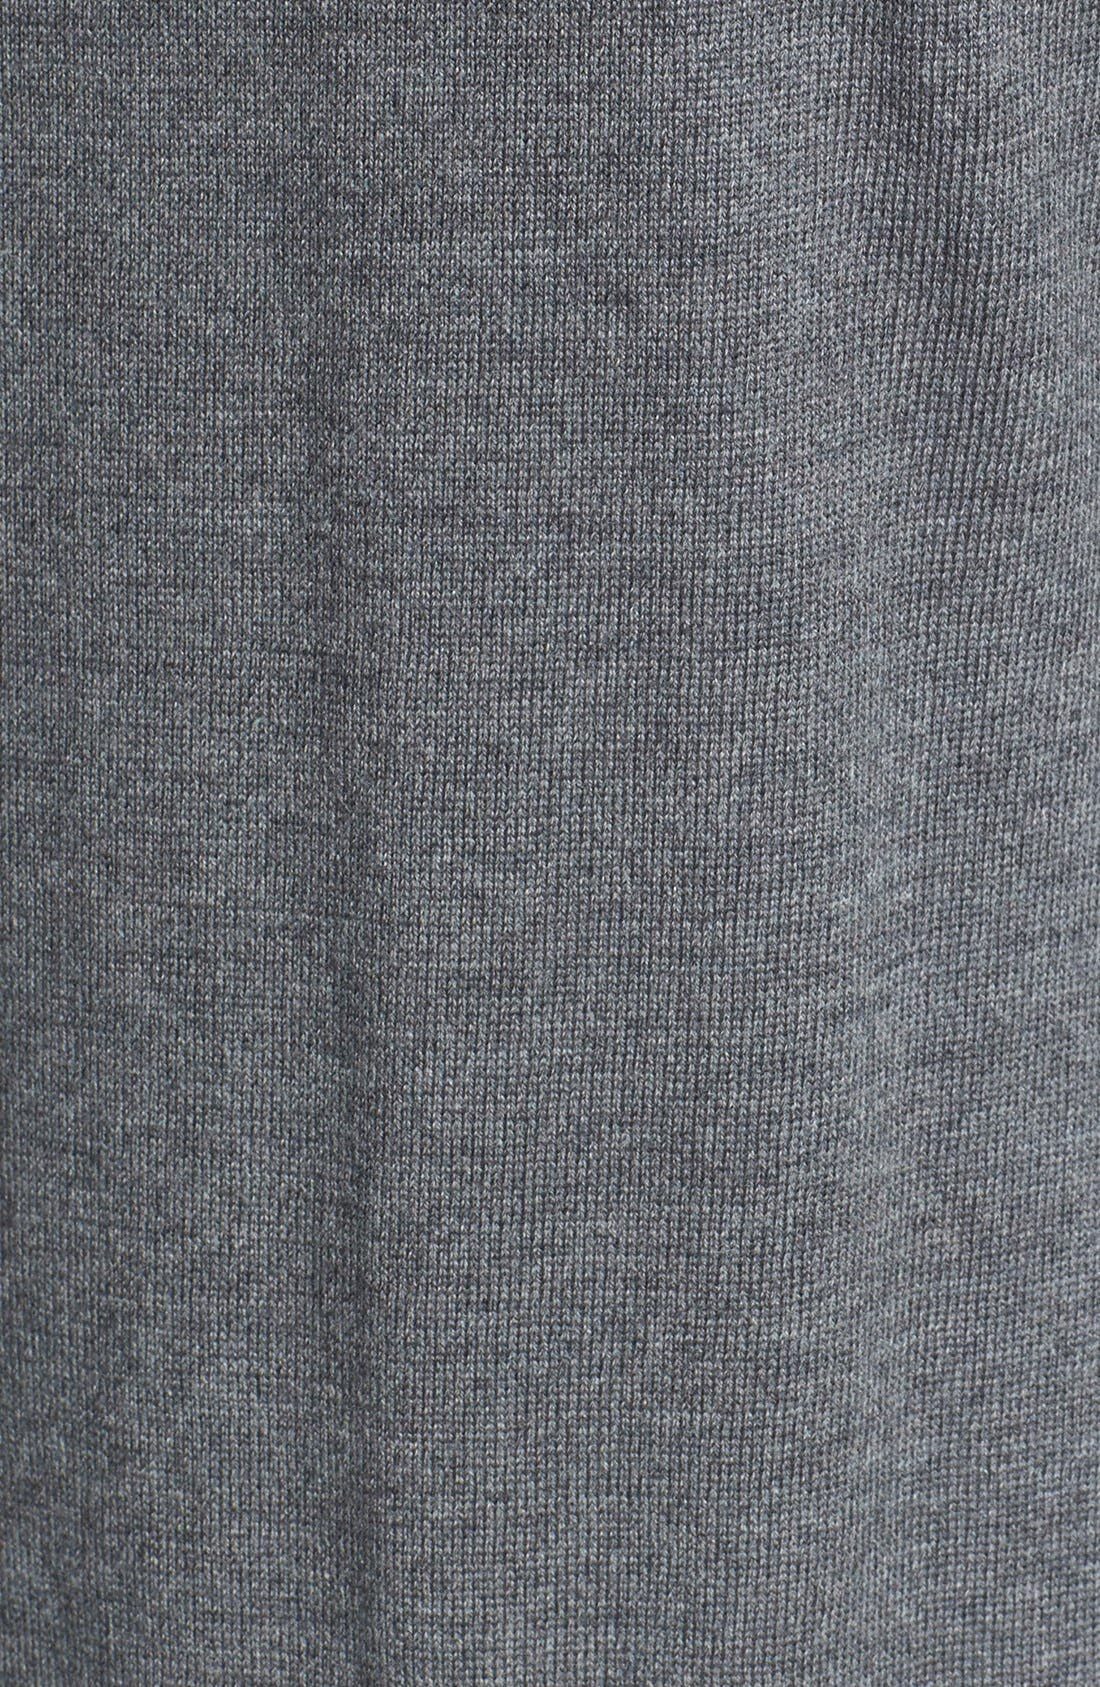 Alternate Image 3  - Eileen Fisher Raglan Sleeve Merino Wool Cardigan (Regular & Petite)